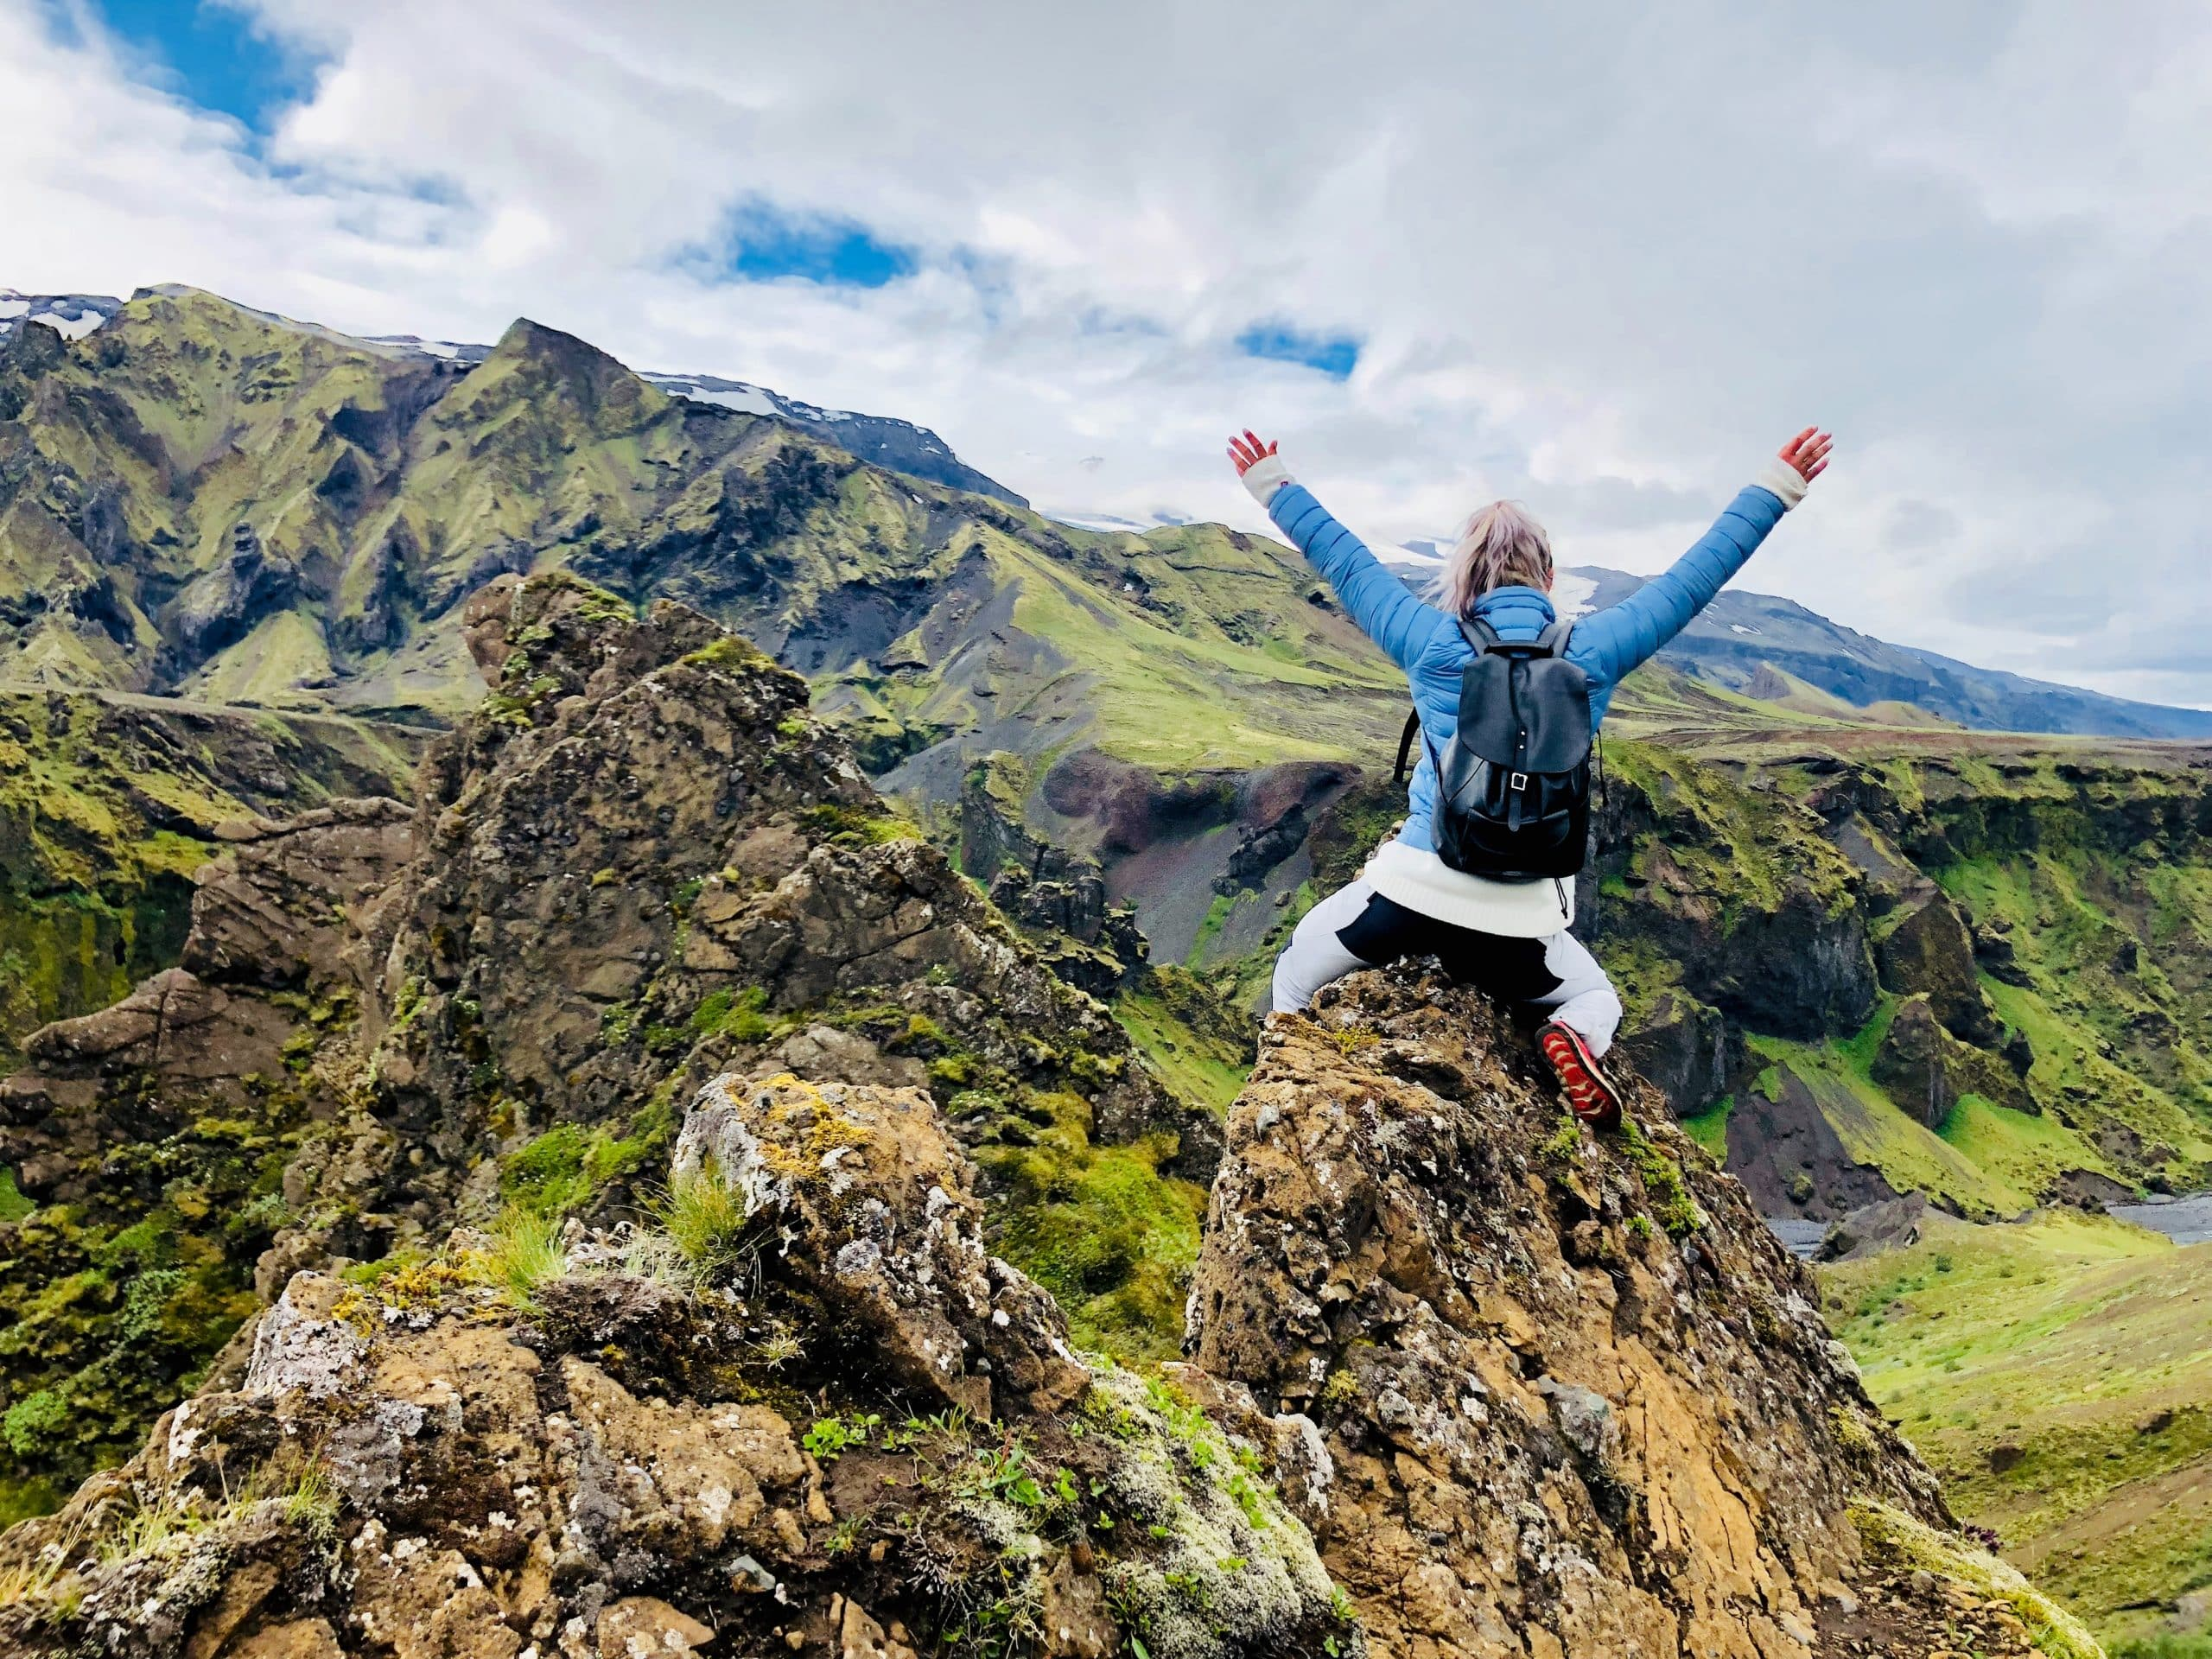 A wooman sitting on a rock in Thorsmork Valley in Iceland's Highlands.